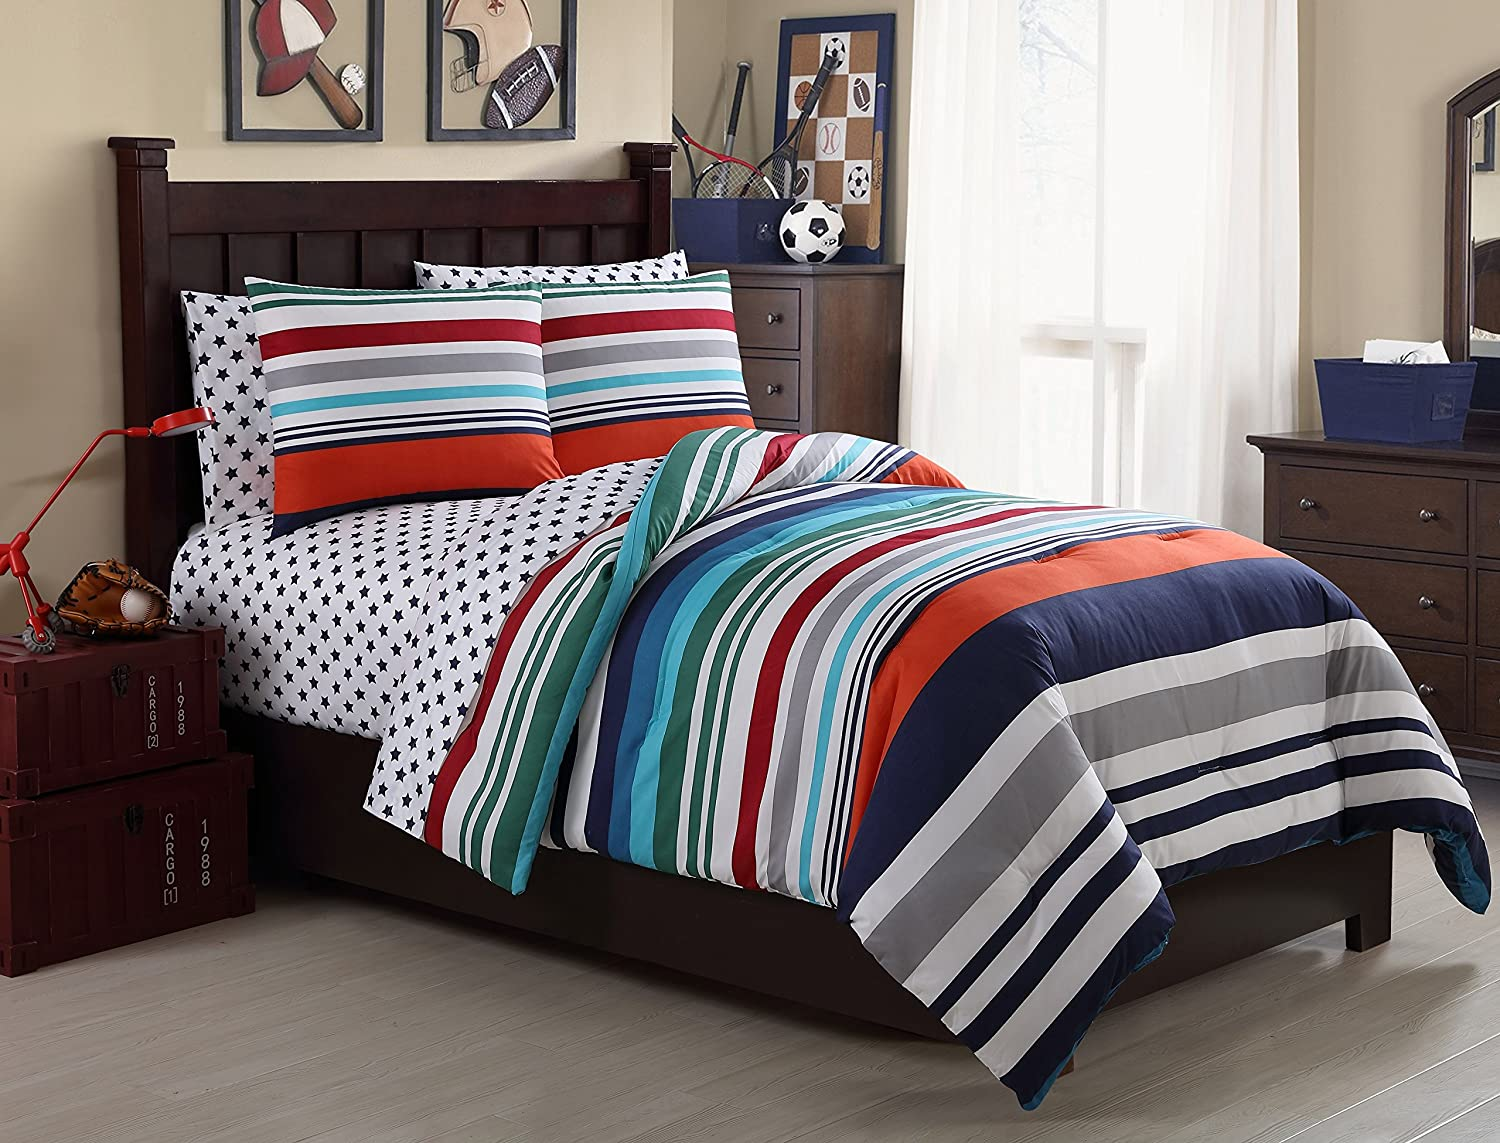 teen boys and teen girls bedding sets – ease bedding with style - twin size bedding by karalai bedding collection